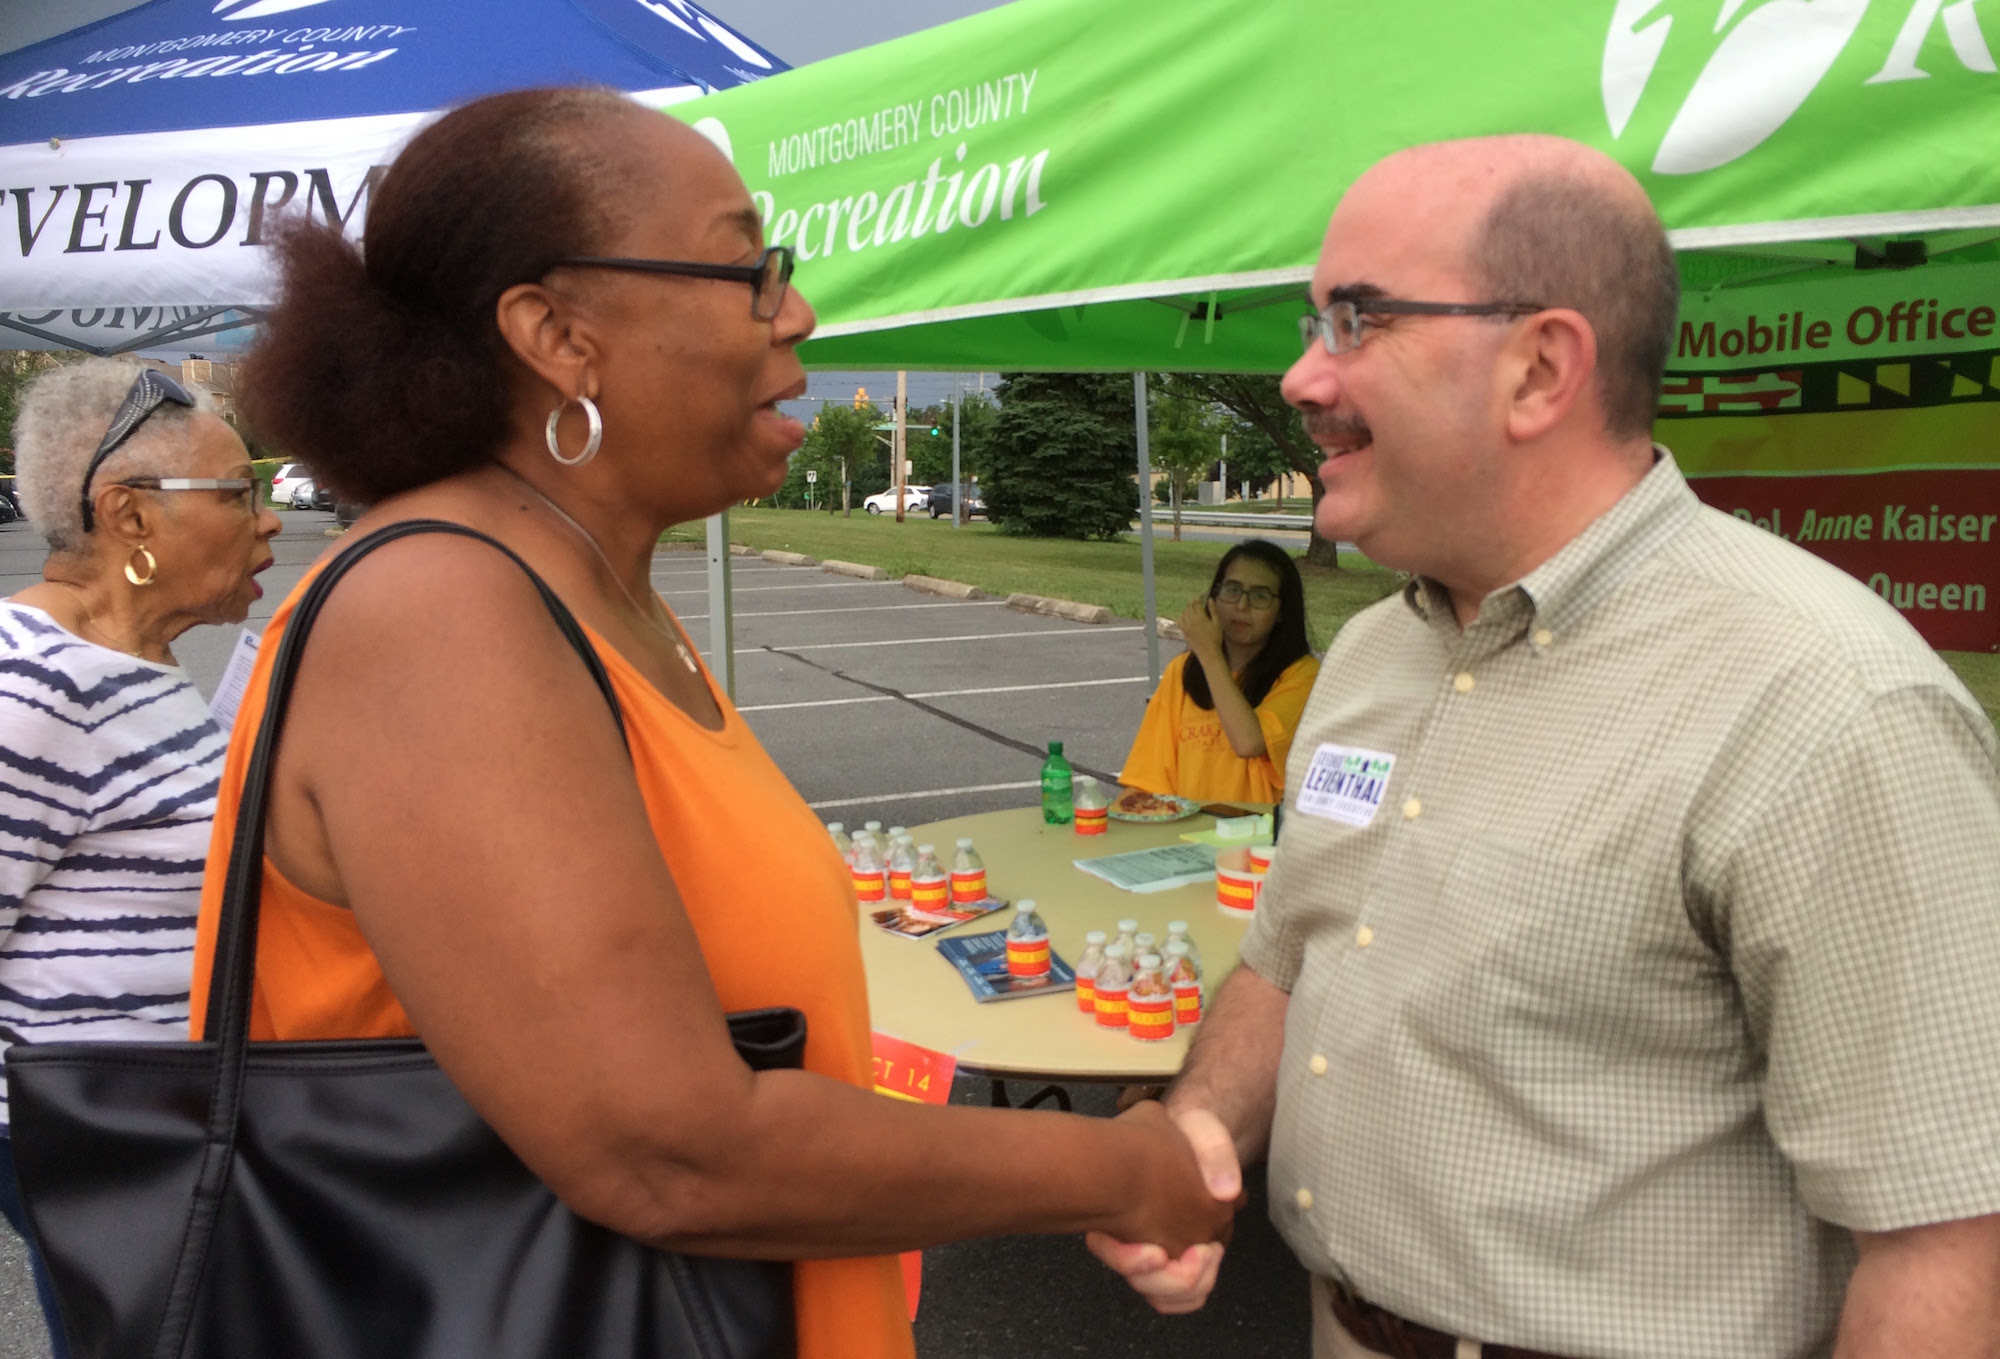 George Leventhal for Montgomery COunty